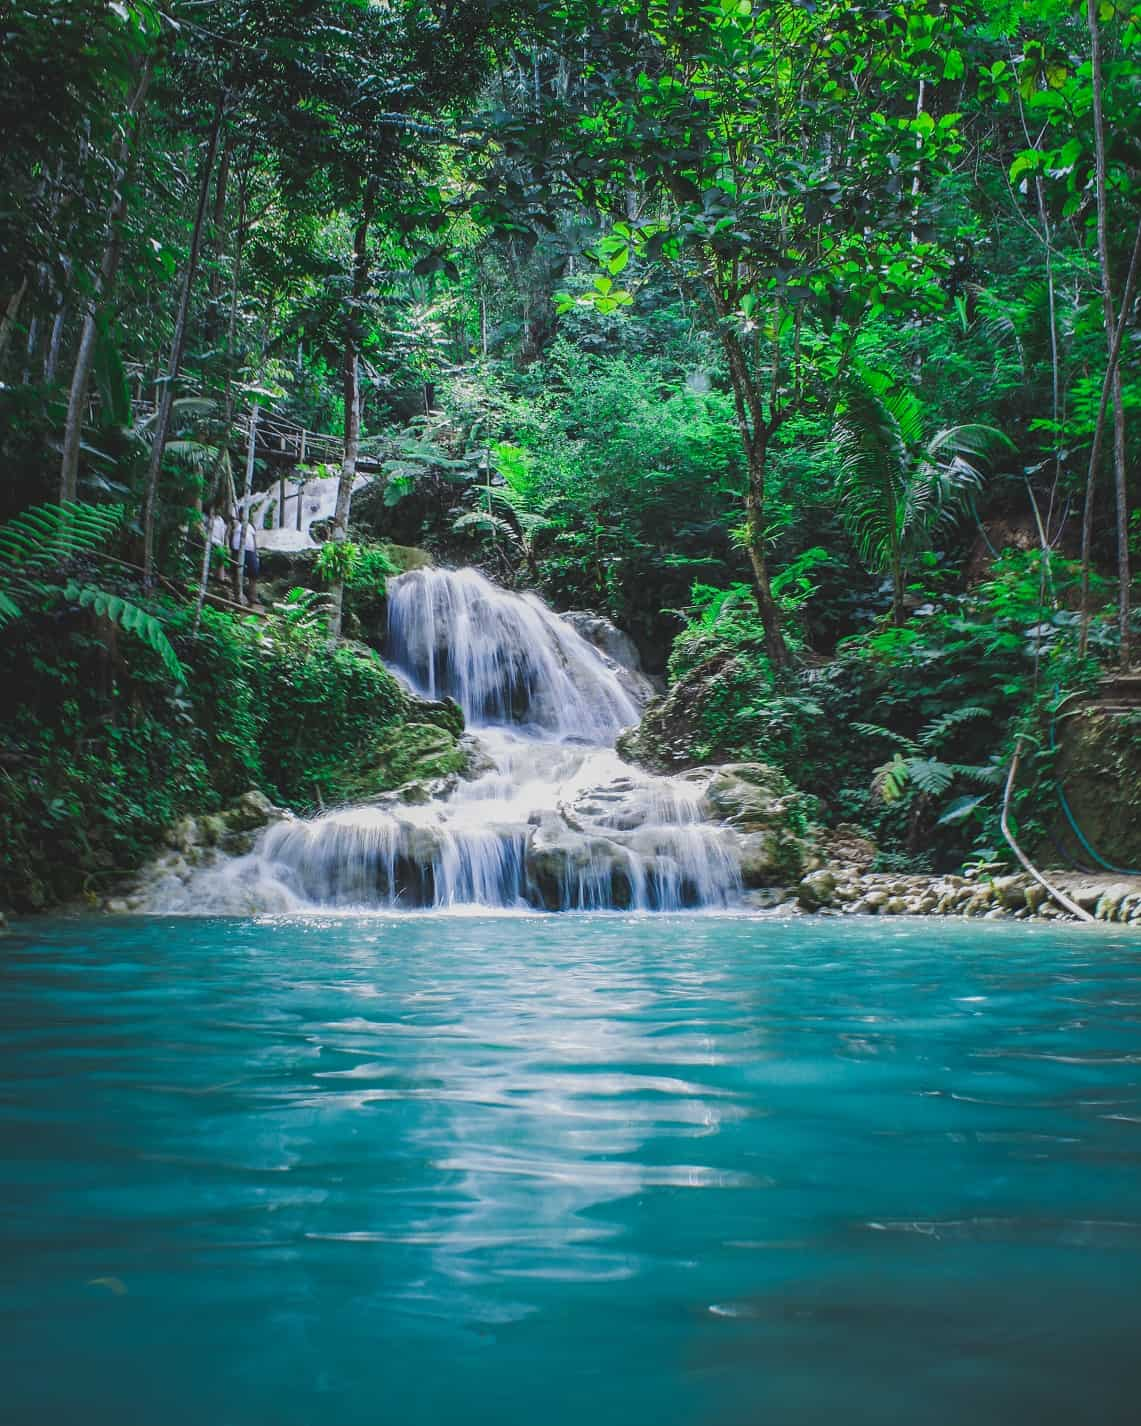 Water Symbolism Explained: A Waterfall Photographed